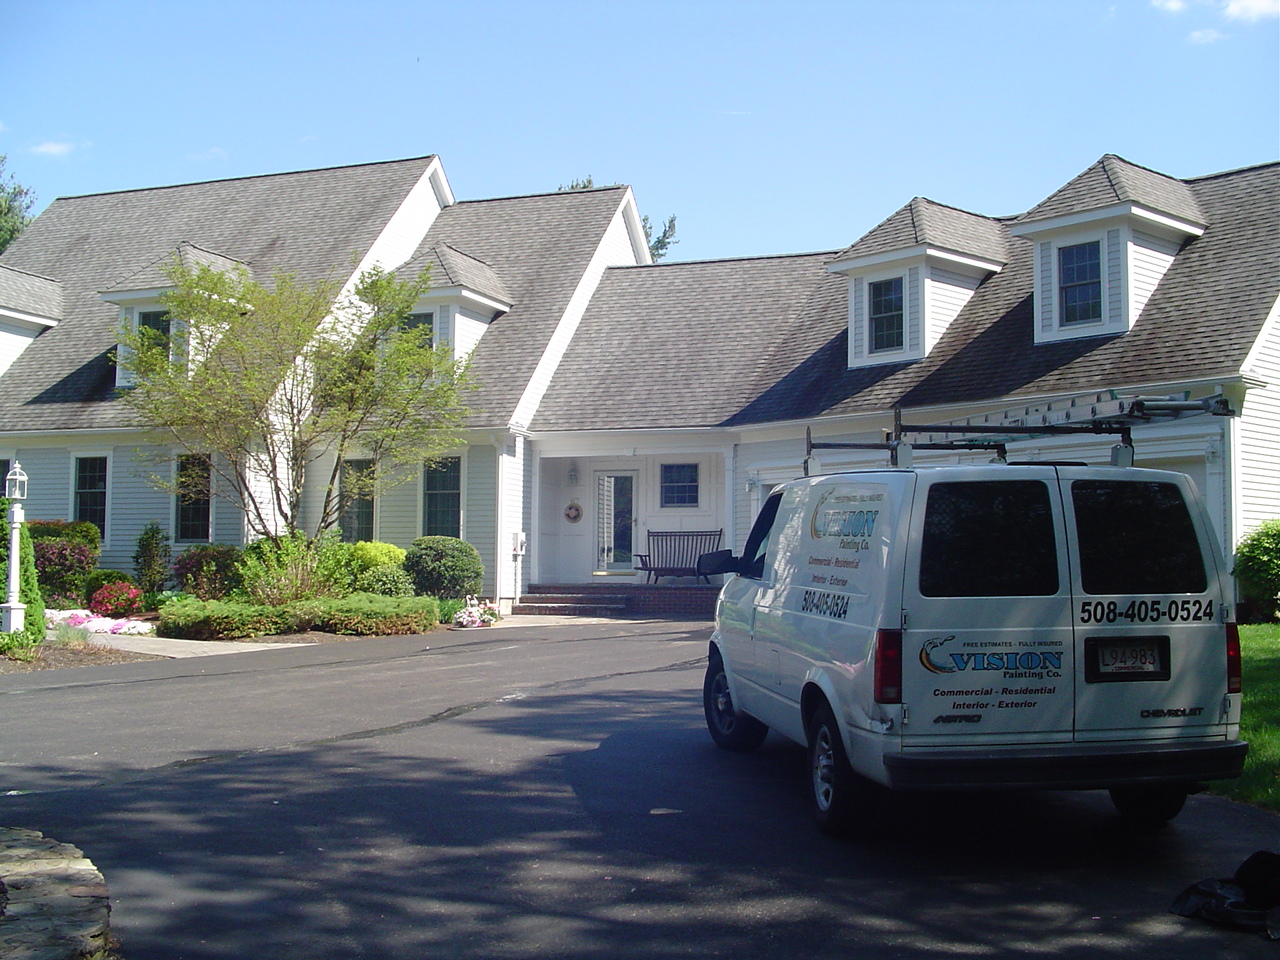 House Painters Wayland Ma Exterior Painting Contractor Wayland Ma Commercial Residential